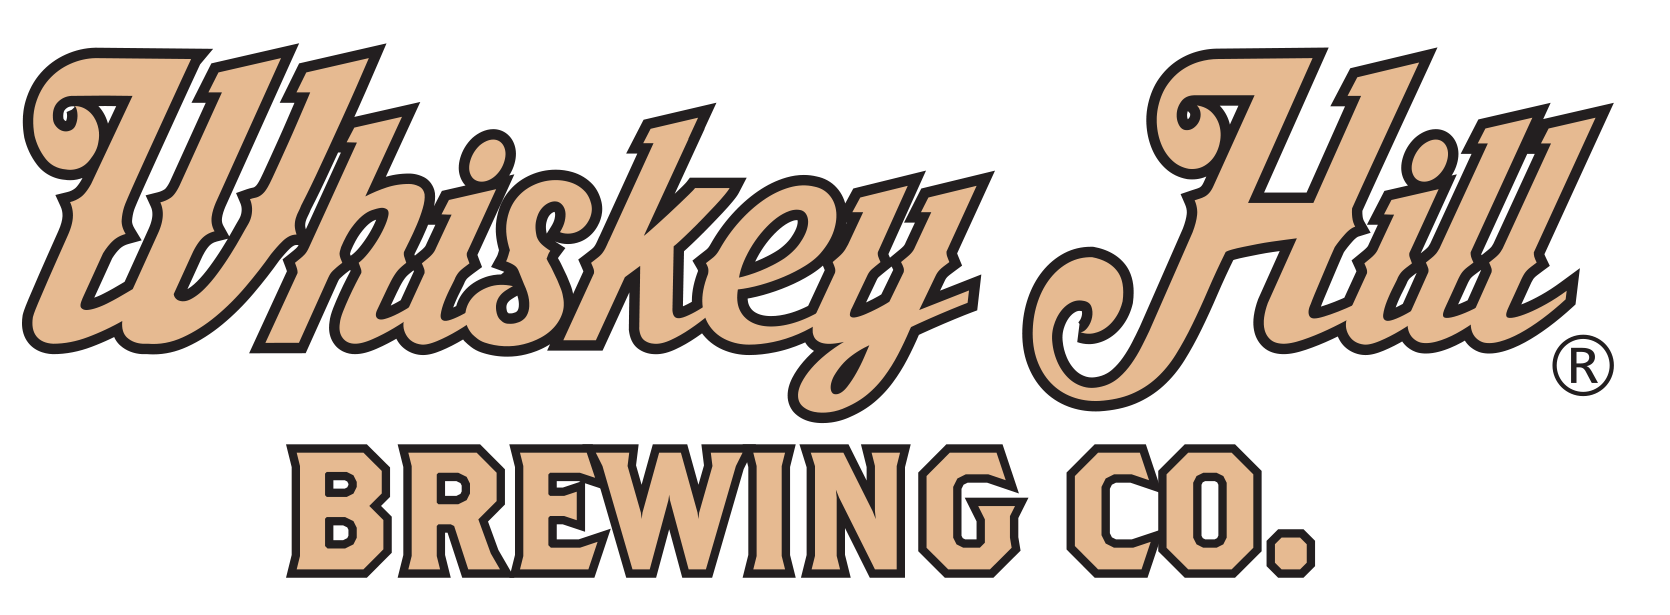 whiskey hill brewing co logo